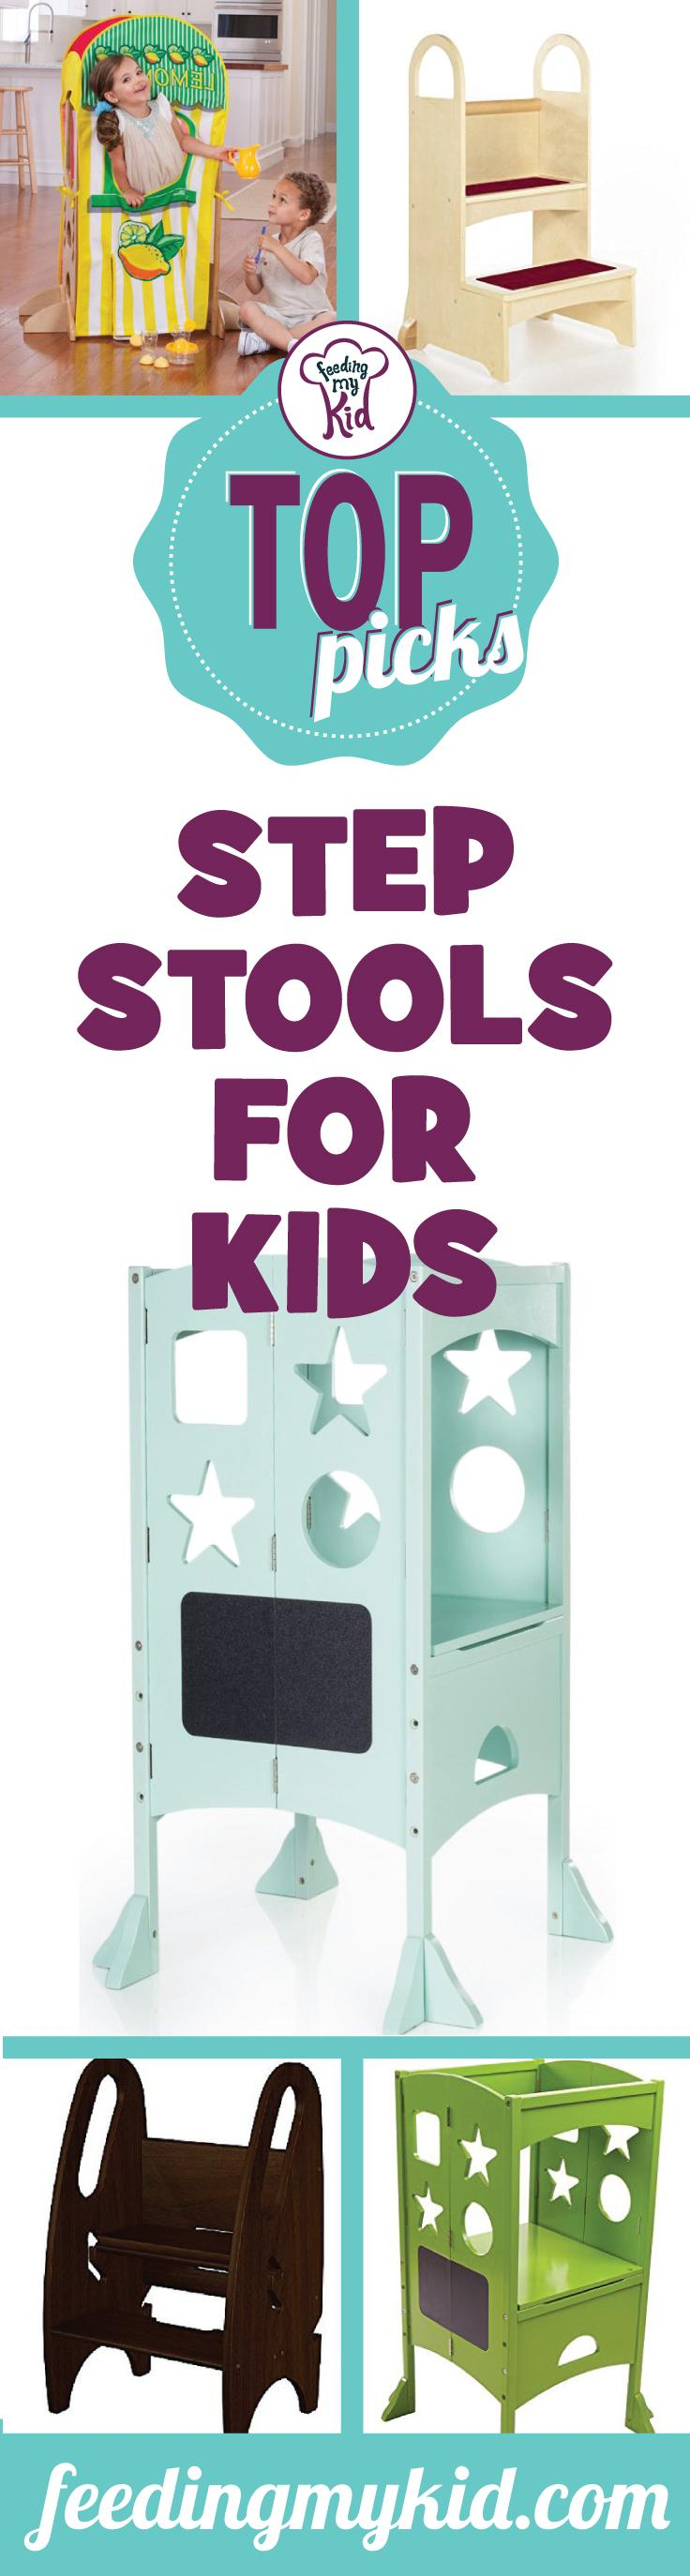 Step Stools for Kids, Learning Tower